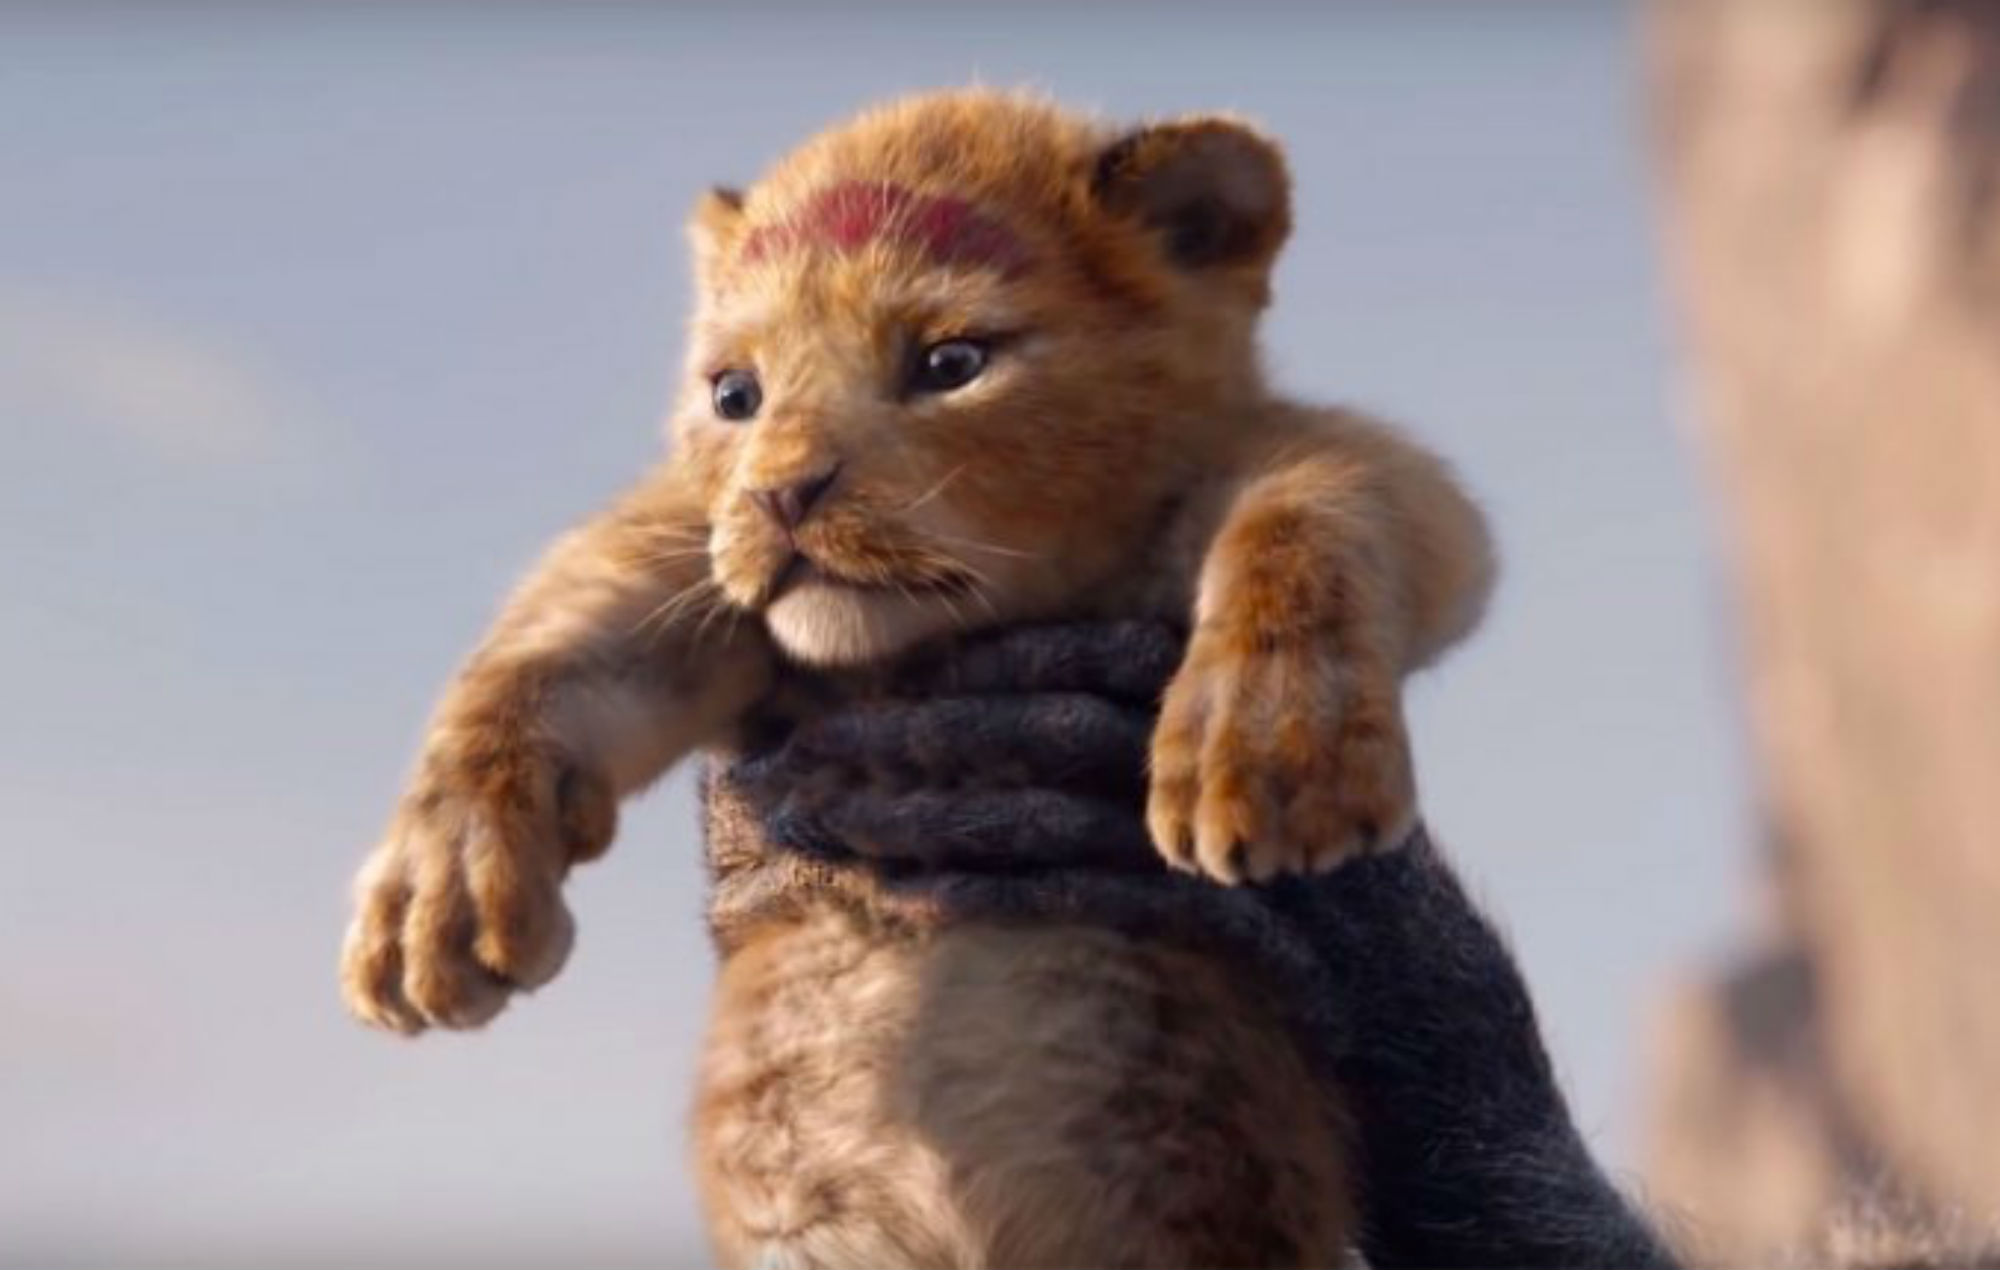 The Stunning New Trailer For The Lion King Is Dividing Fans